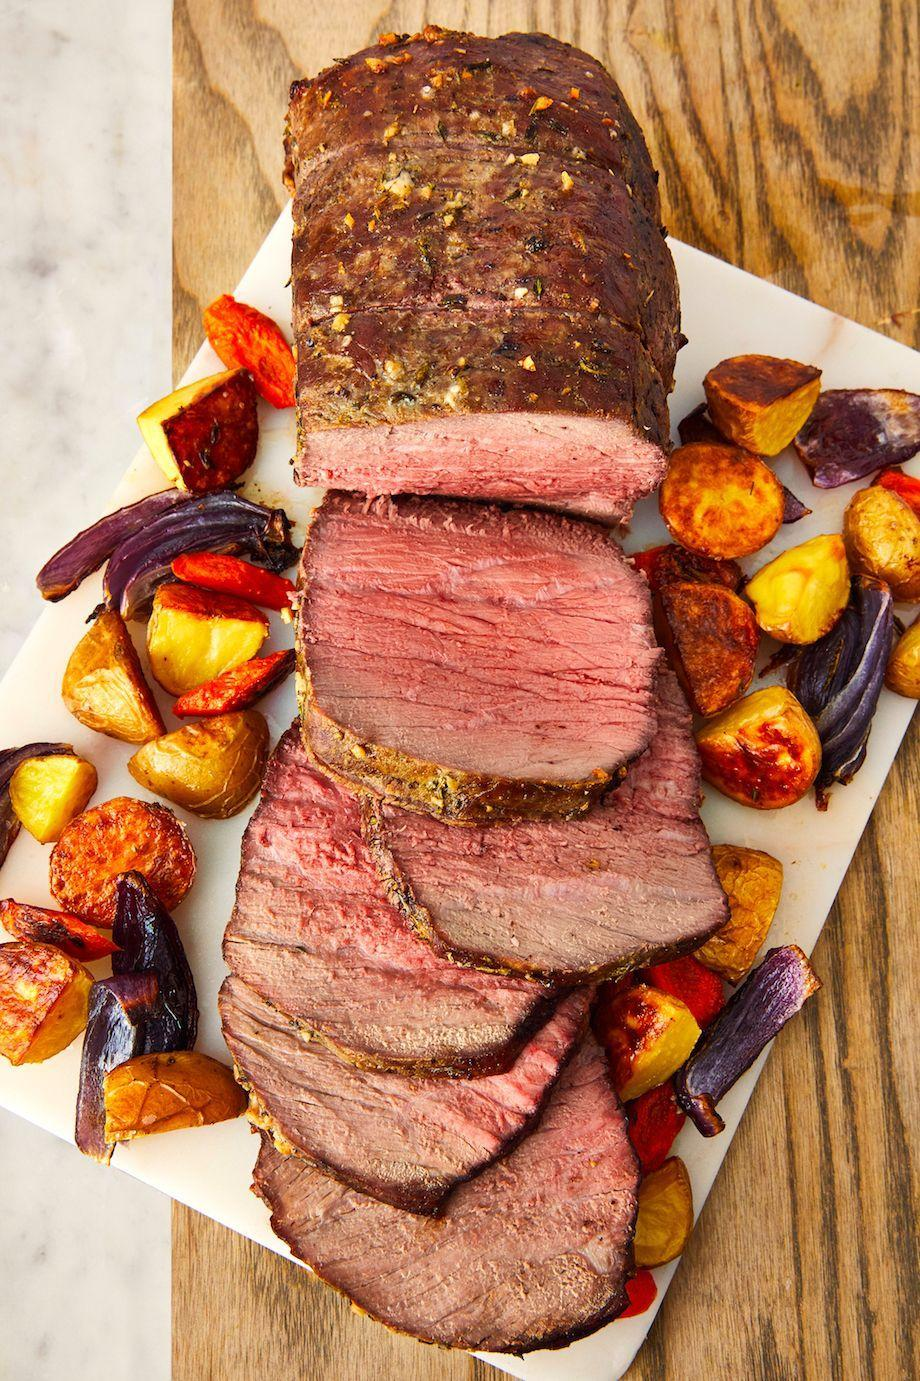 """<p>This will wow your dinner guests. </p><p>Get the recipe from <a href=""""https://www.delish.com/cooking/recipe-ideas/a23584914/perfect-roast-beef-recipe/"""" rel=""""nofollow noopener"""" target=""""_blank"""" data-ylk=""""slk:Delish"""" class=""""link rapid-noclick-resp"""">Delish</a>. </p>"""